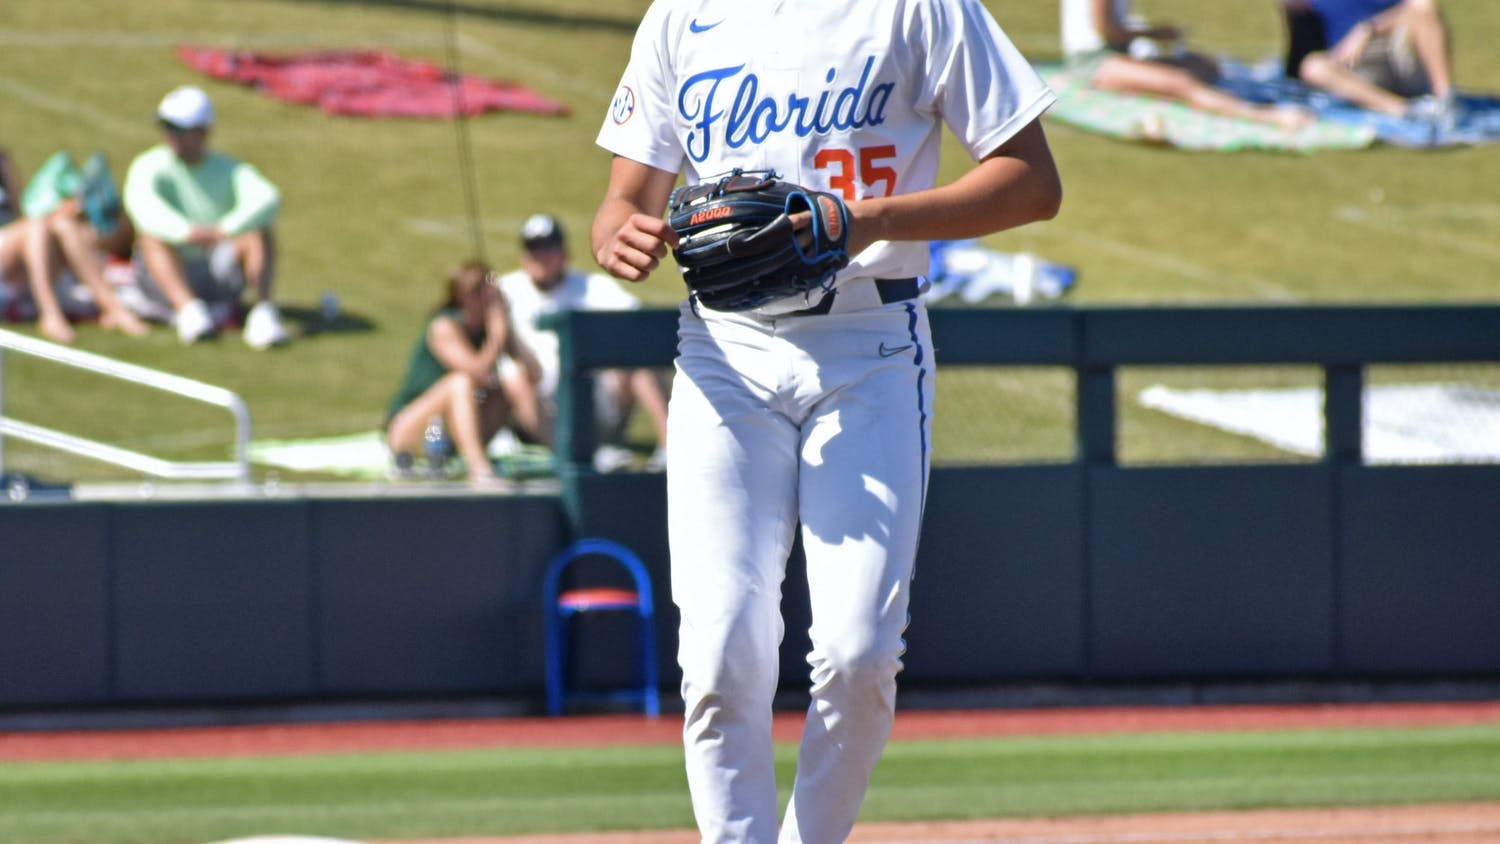 Florida pitcher Franco Aleman on the mound against Jacksonville March 14. Aleman struck out a career-high eight batters Saturday but Florida was swept by No. 1 Arkansas.